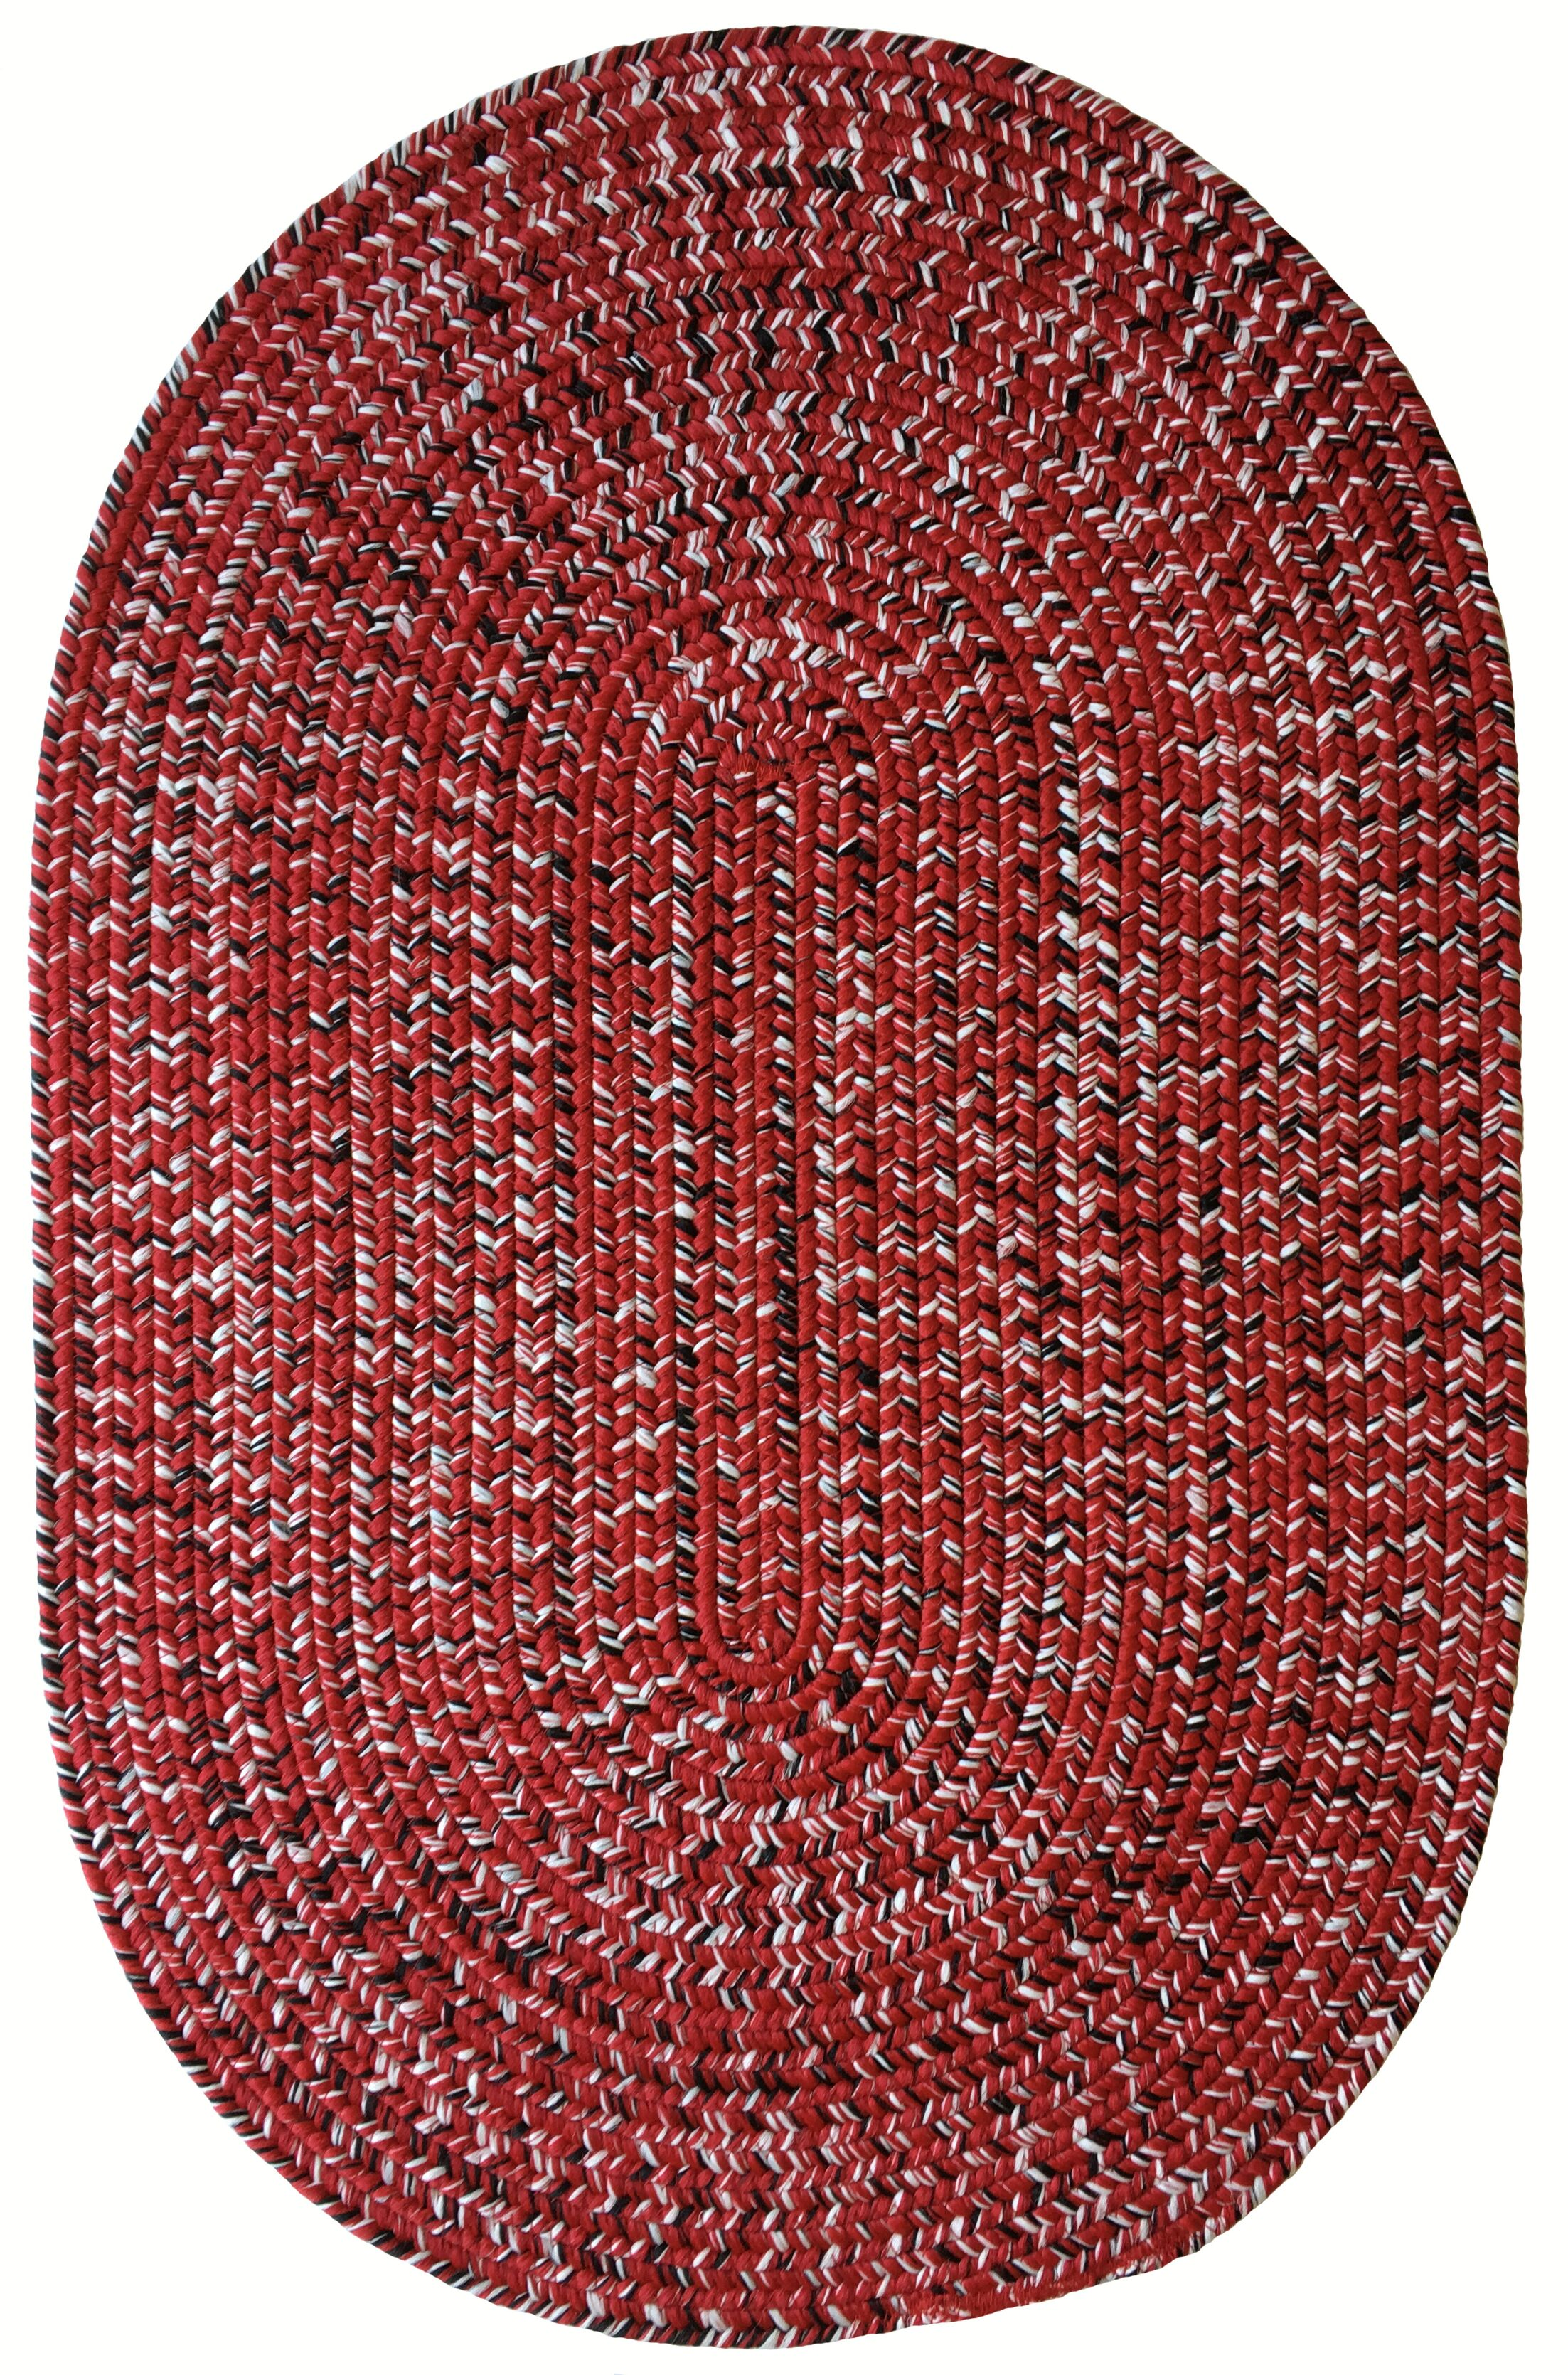 One-of-a-Kind Aukerman Hand-Braided Red/Black Indoor/Outdoor Area Rug Rug Size: Oval 9'2